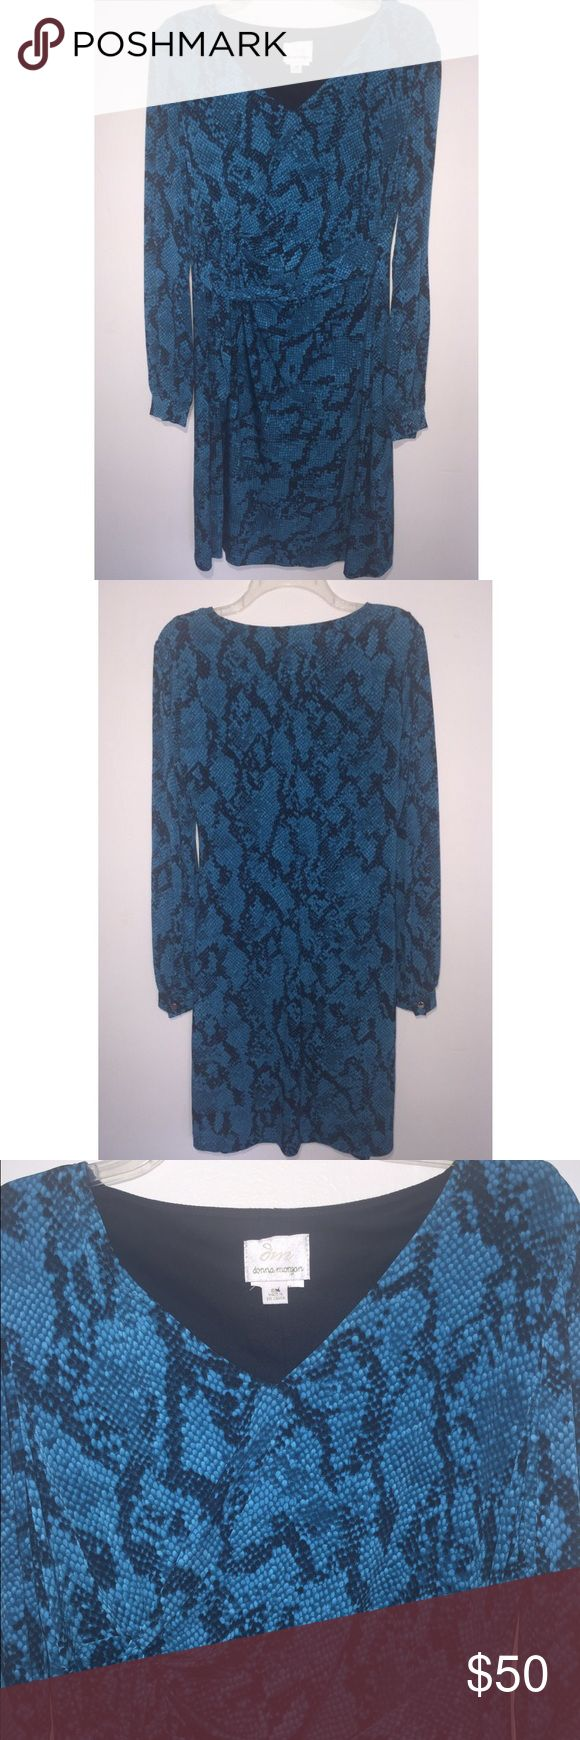 Donna Morgan Donna Morgan  Band New!  Authentic!  It was a gift, It came without a tag.  Never been used brand new! NO TRADES!! Donna Morgan Dresses Midi